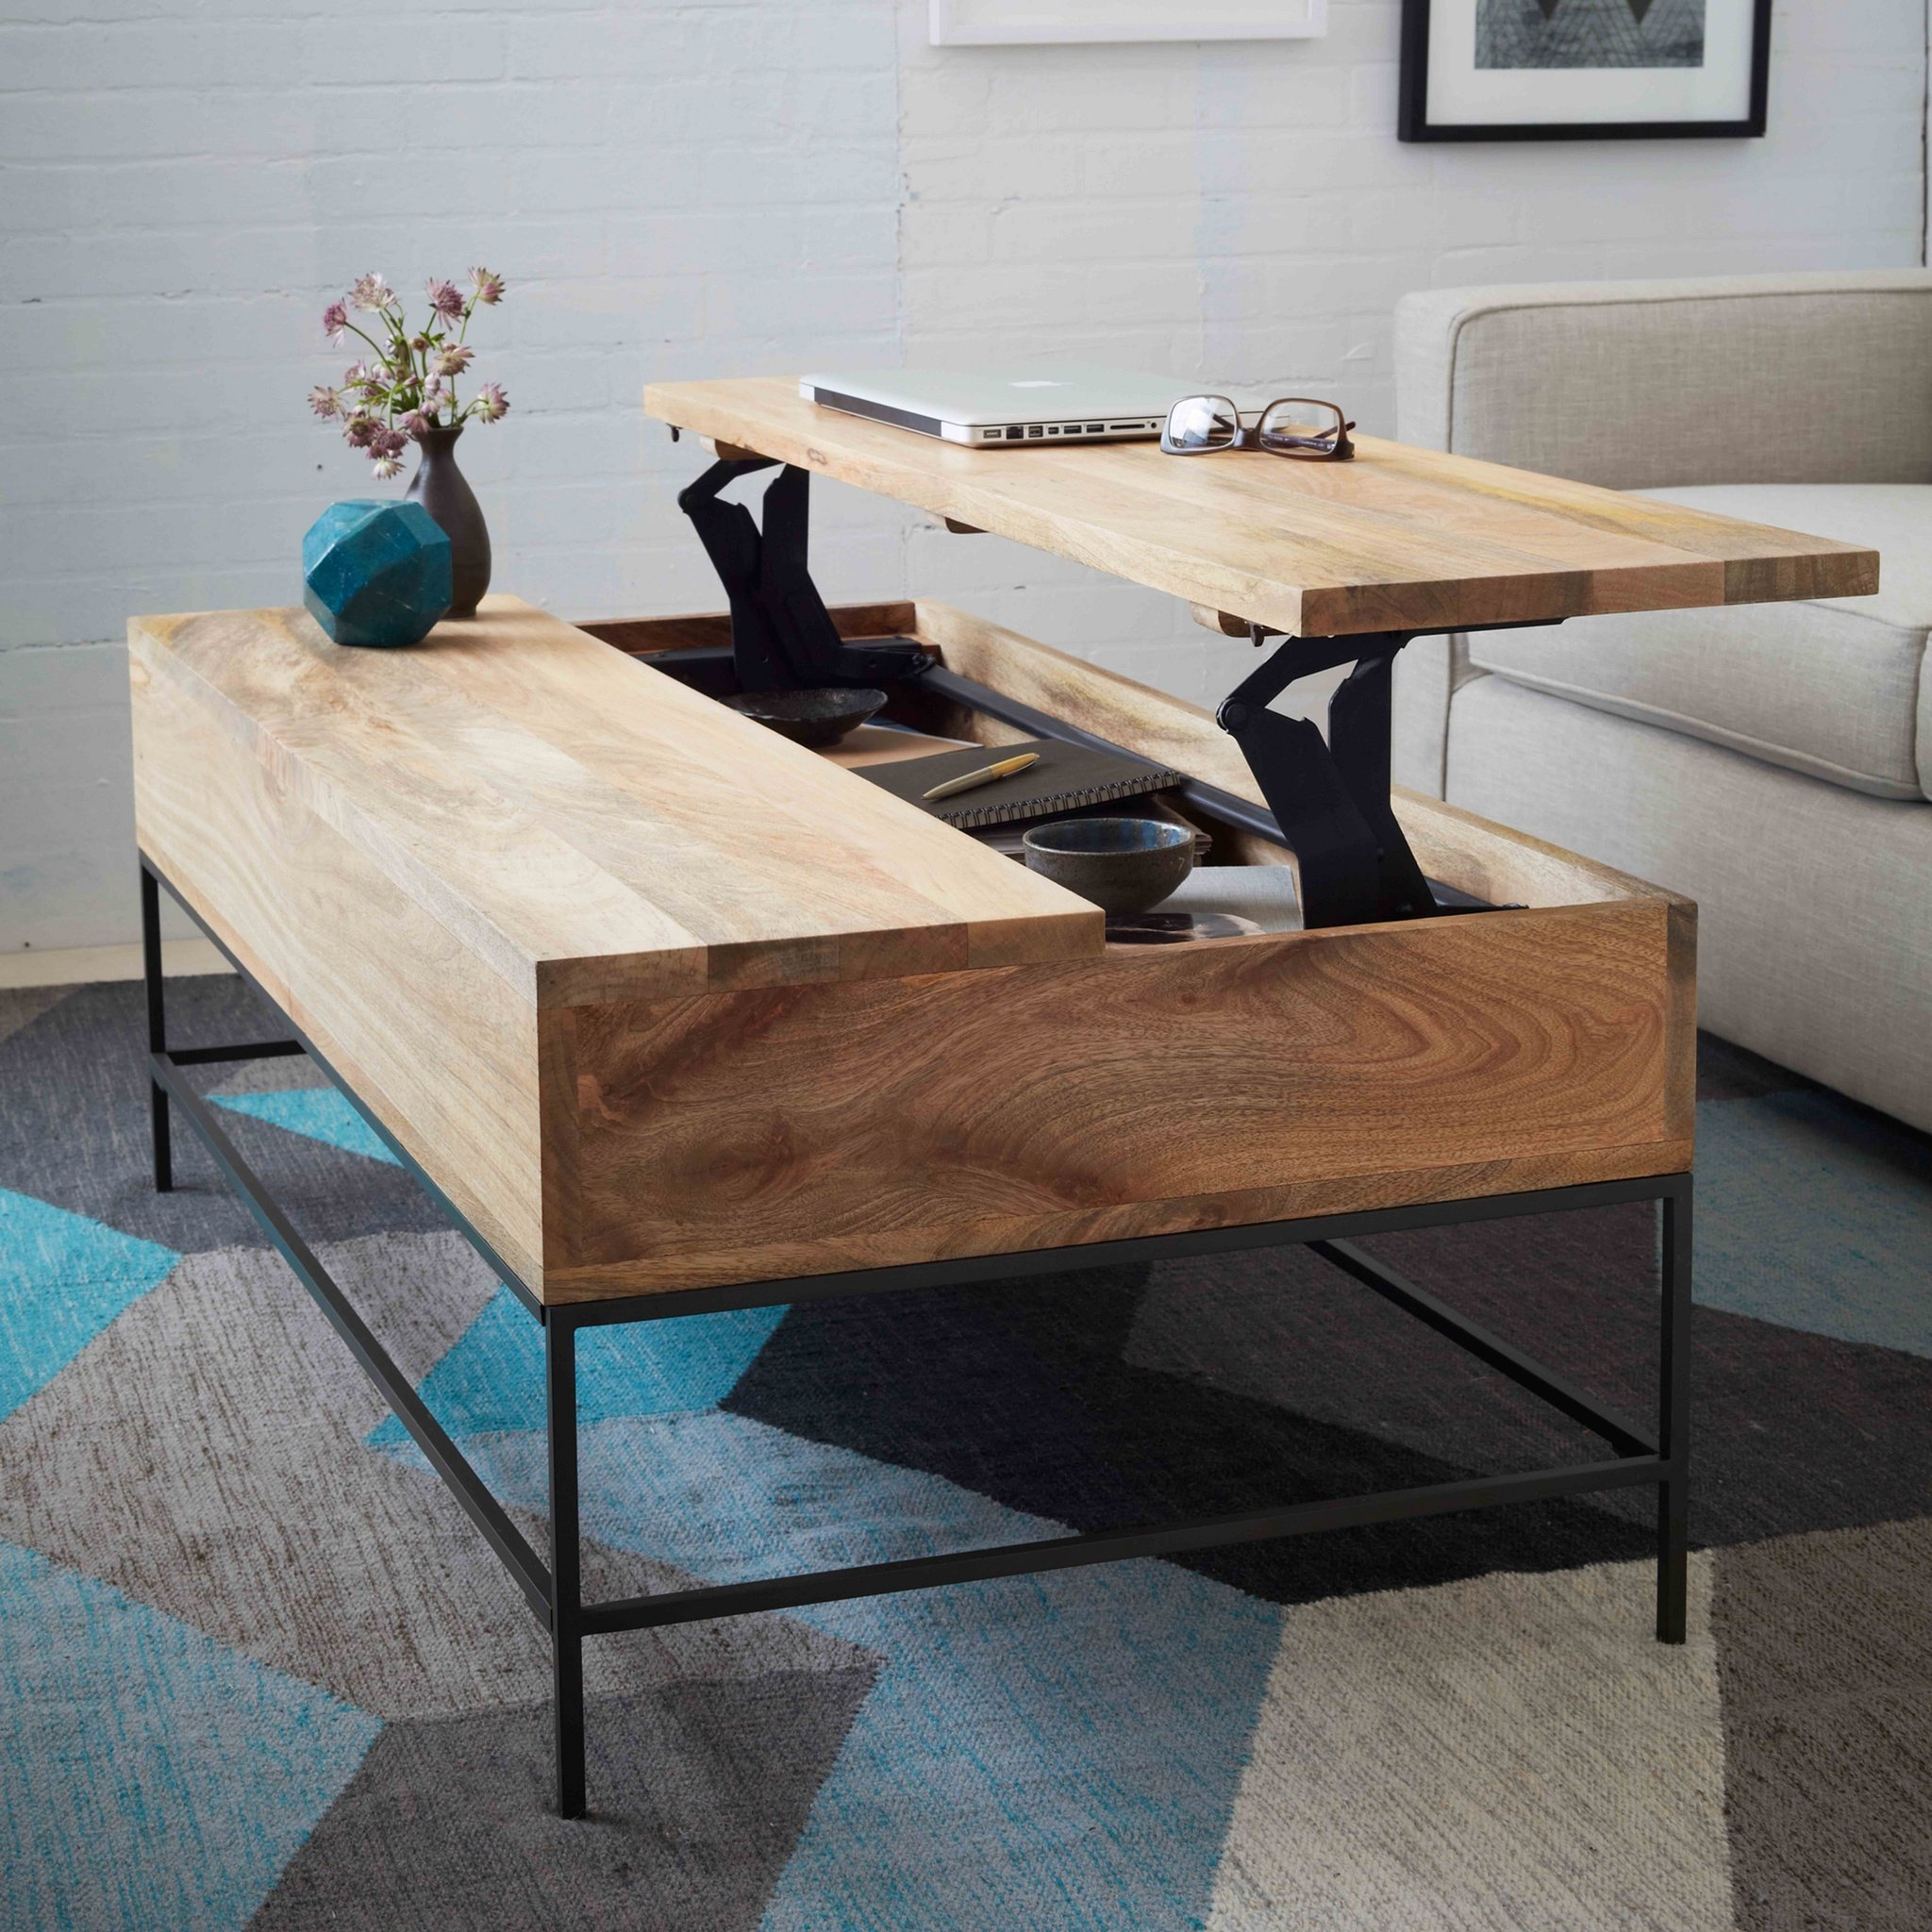 Living Room Ideas A Modern Coffee Table f Your French Pressed Coffee_2 modern coffee table Living Room Ideas: A Modern Coffee Table f/ Your French Pressed Coffee Living Room Ideas A Modern Coffee Table f Your French Pressed Coffee 6